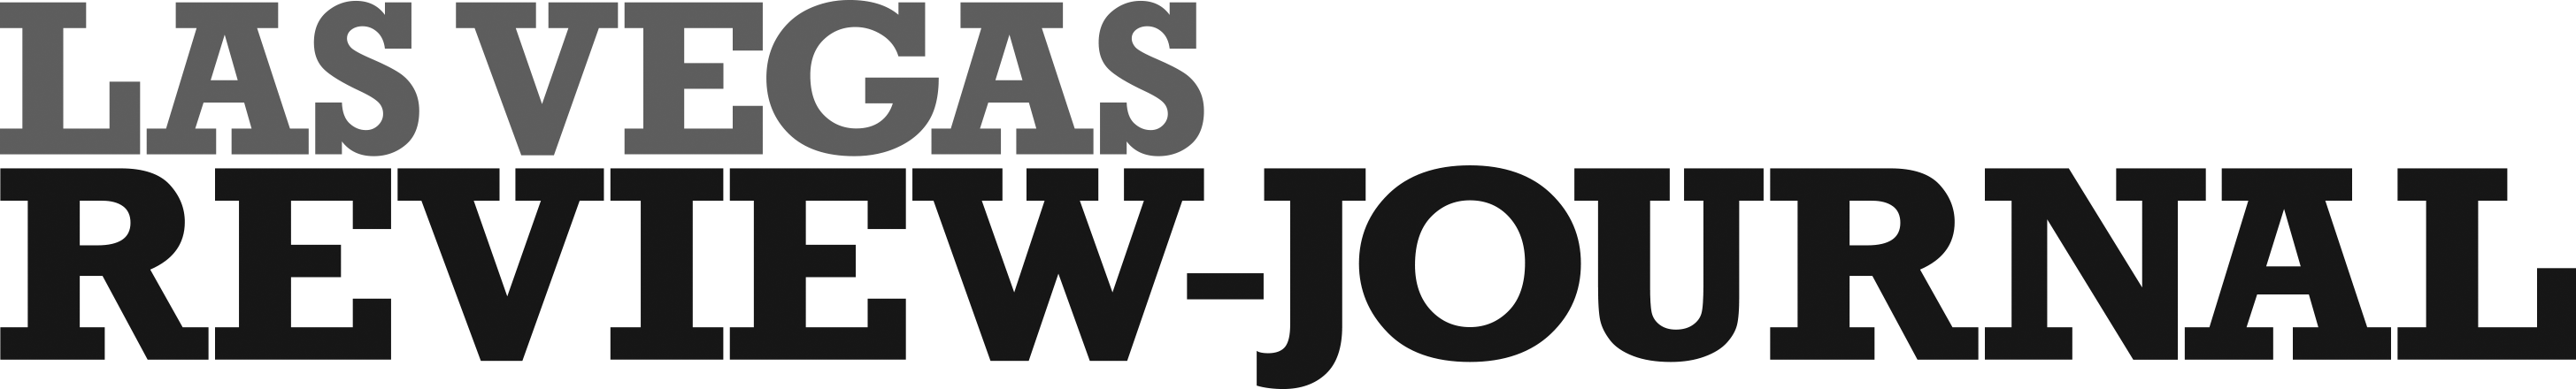 las-vegas-review-journal-logo-bw